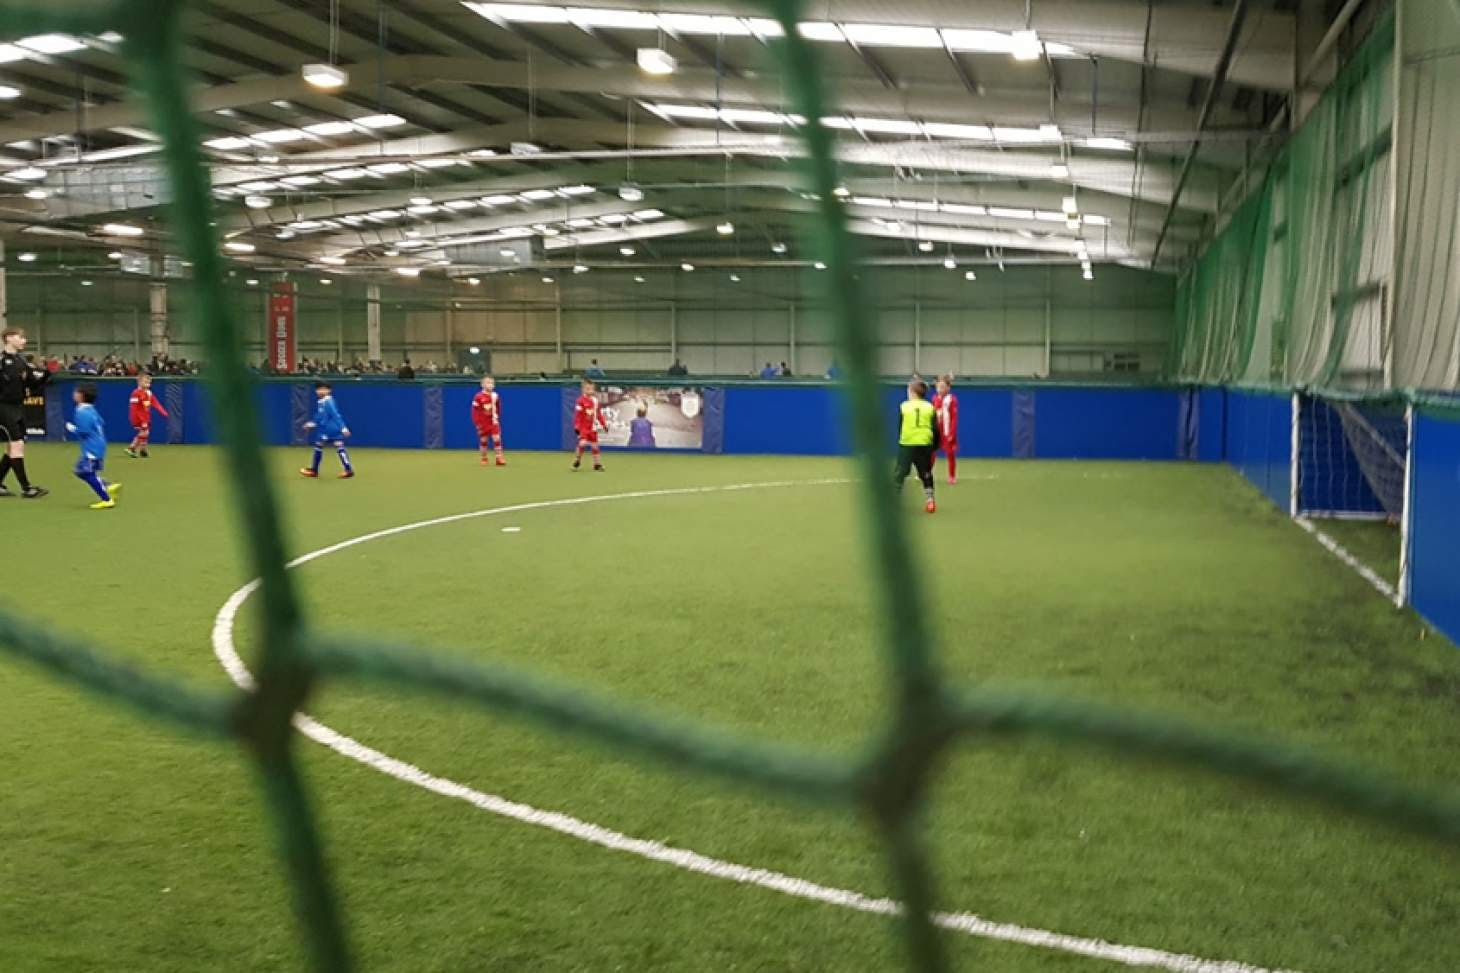 Powerleague Blackburn 5 a side | 3G Astroturf football pitch